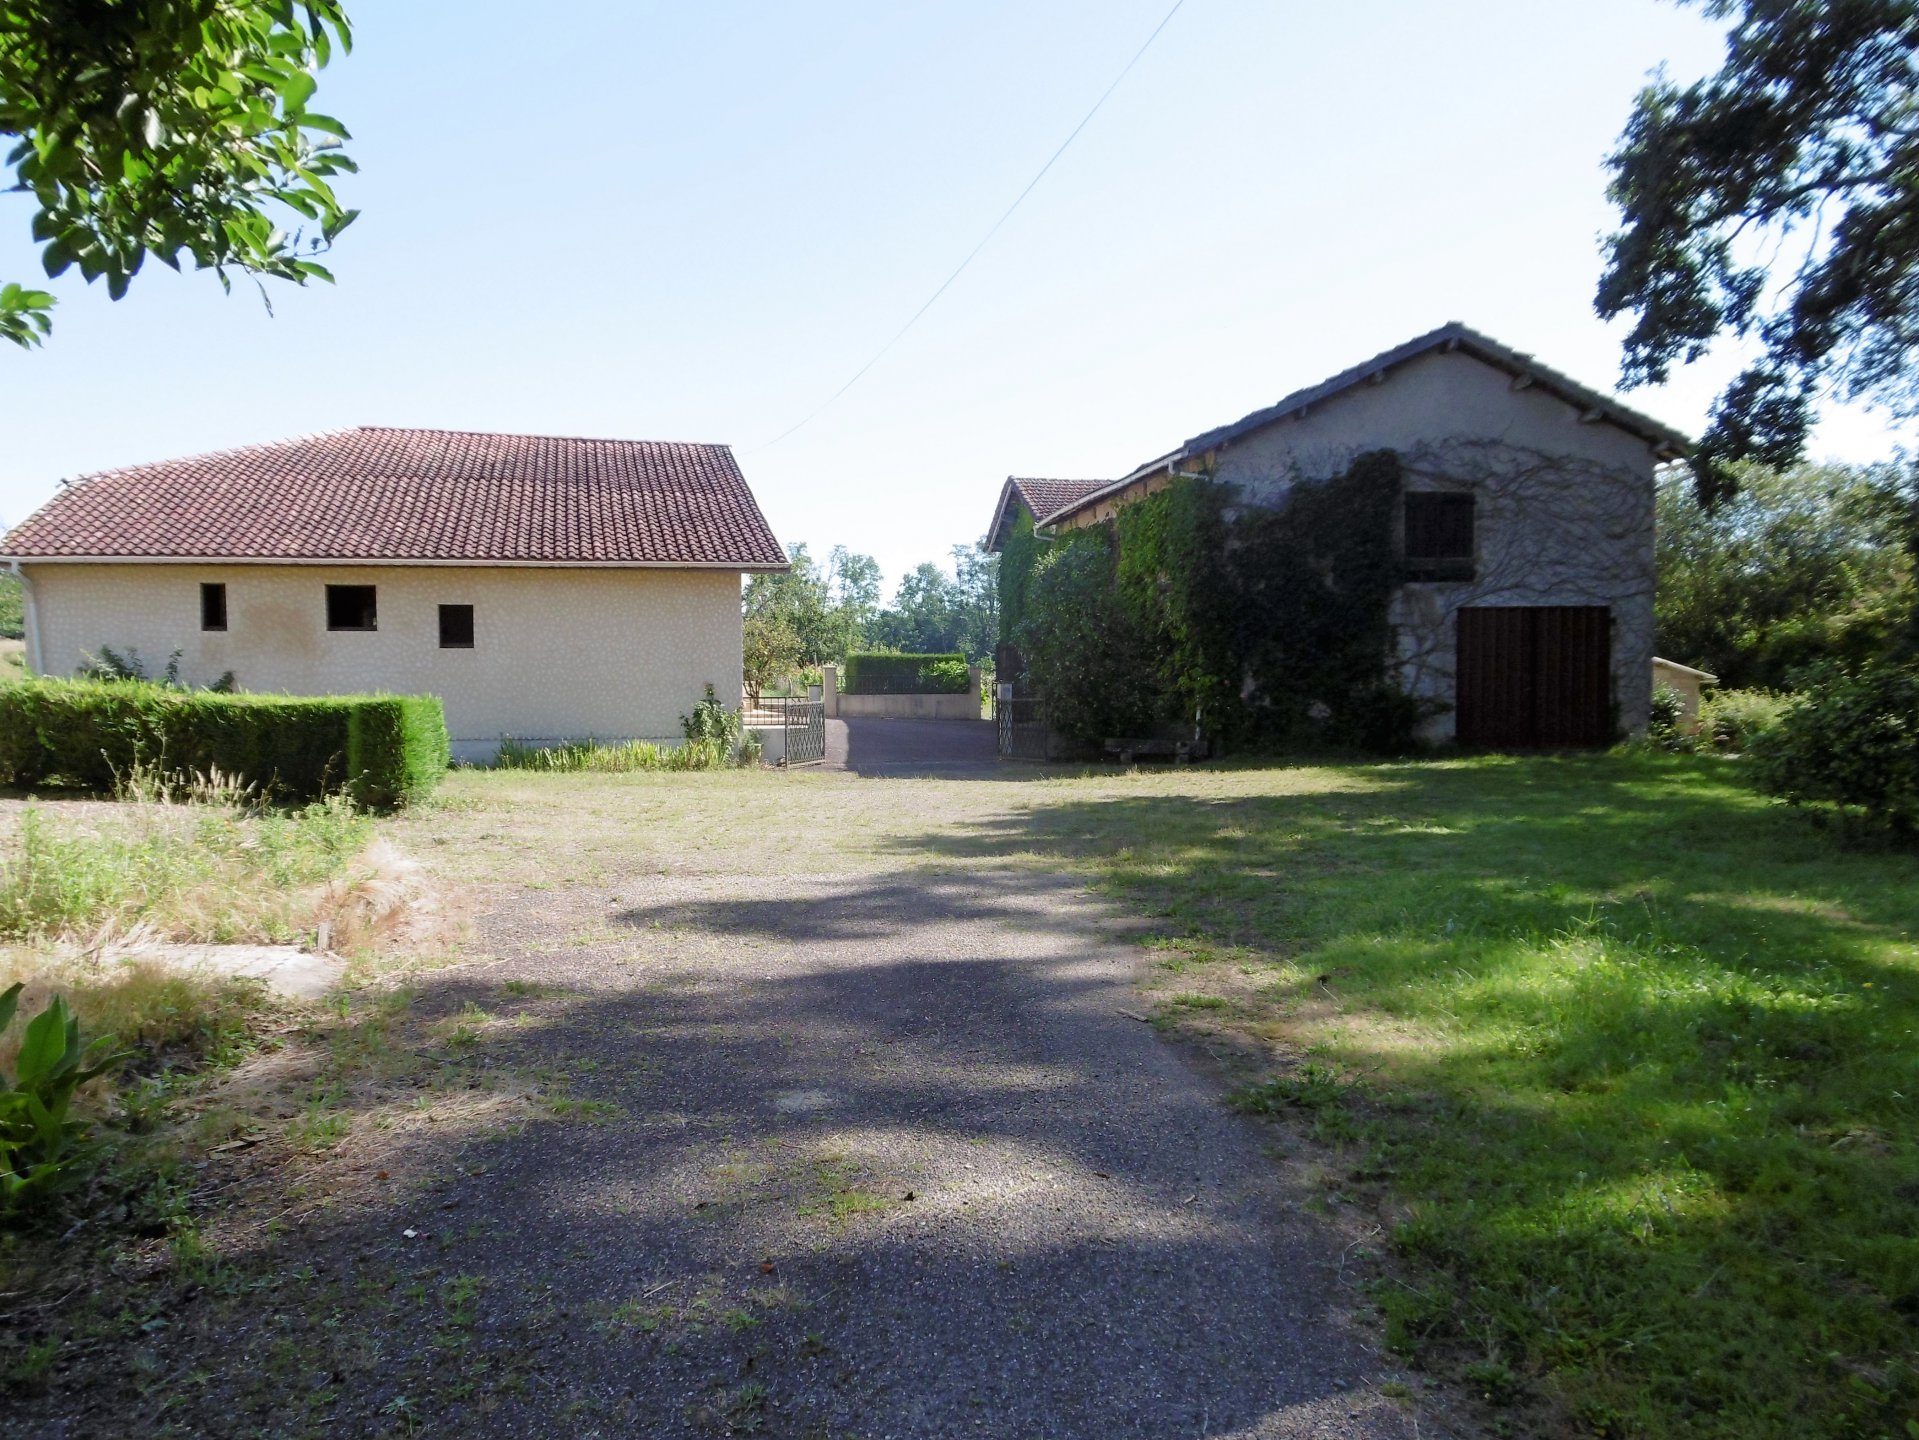 Near MONTFORT EN CHALOSSE - Old farmhouse with outbuildings, set in 7 hectares of land.